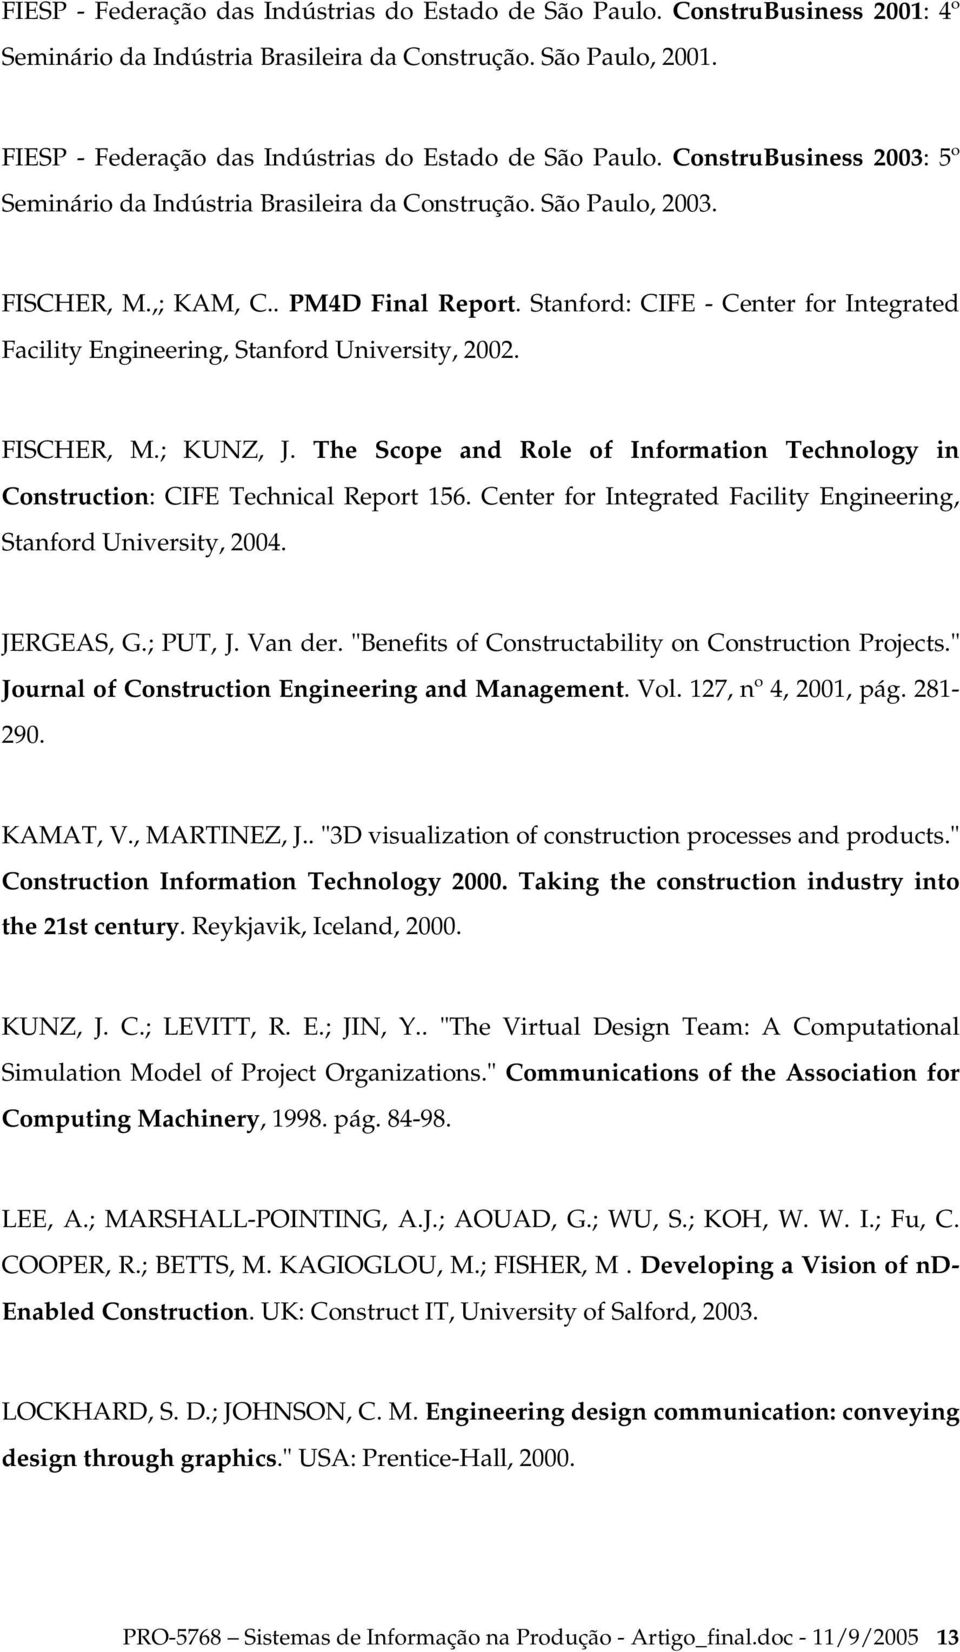 Stanford: CIFE - Center for Integrated Facility Engineering, Stanford University, 2002. FISCHER, M.; KUNZ, J. The Scope and Role of Information Technology in Construction: CIFE Technical Report 156.